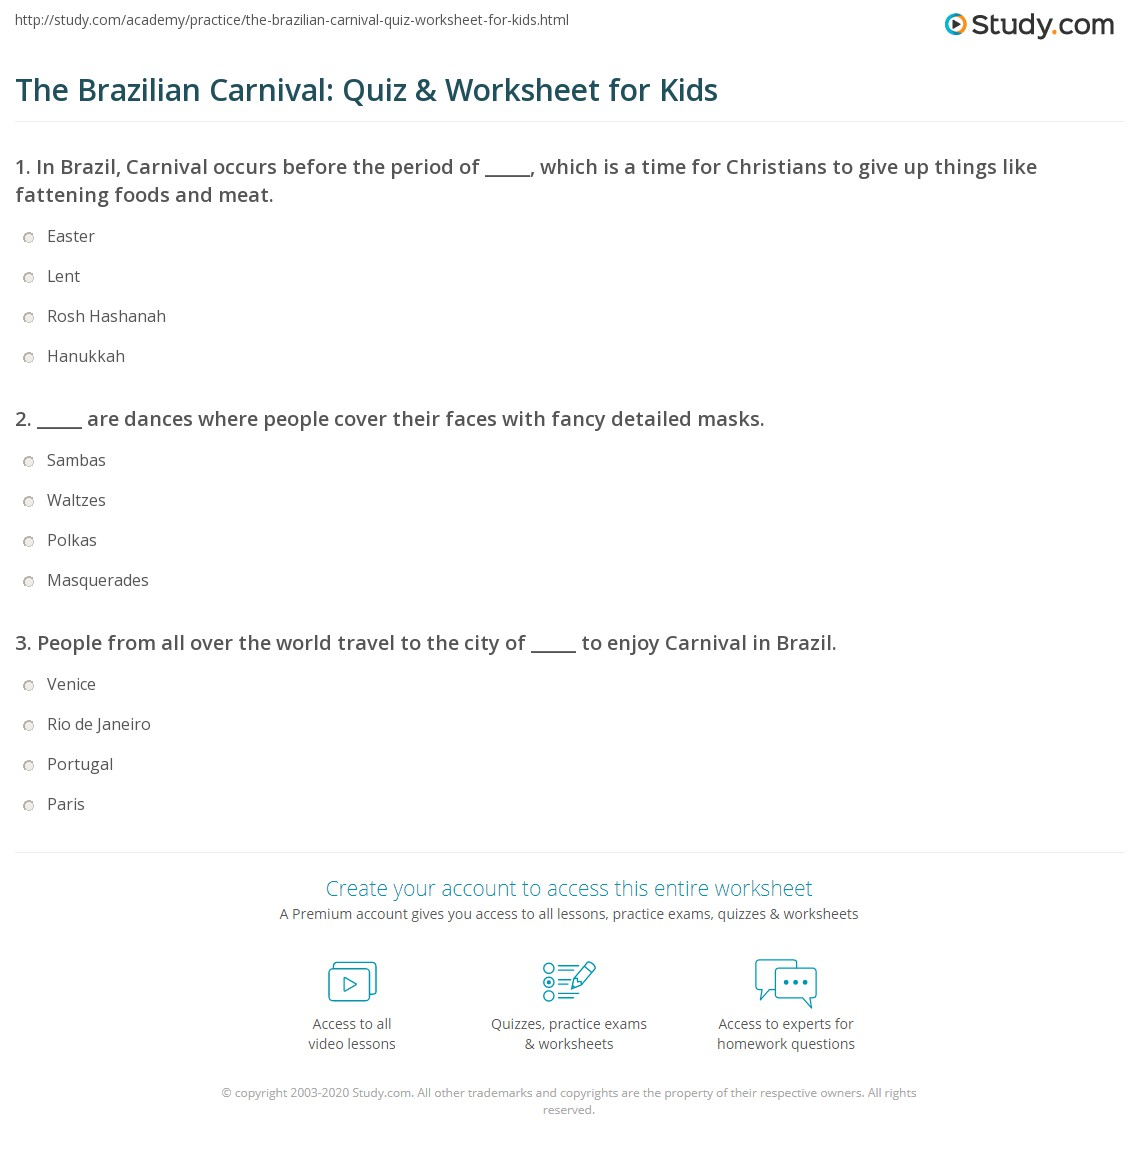 The Brazilian Carnival: Quiz & Worksheet for Kids | Study.com